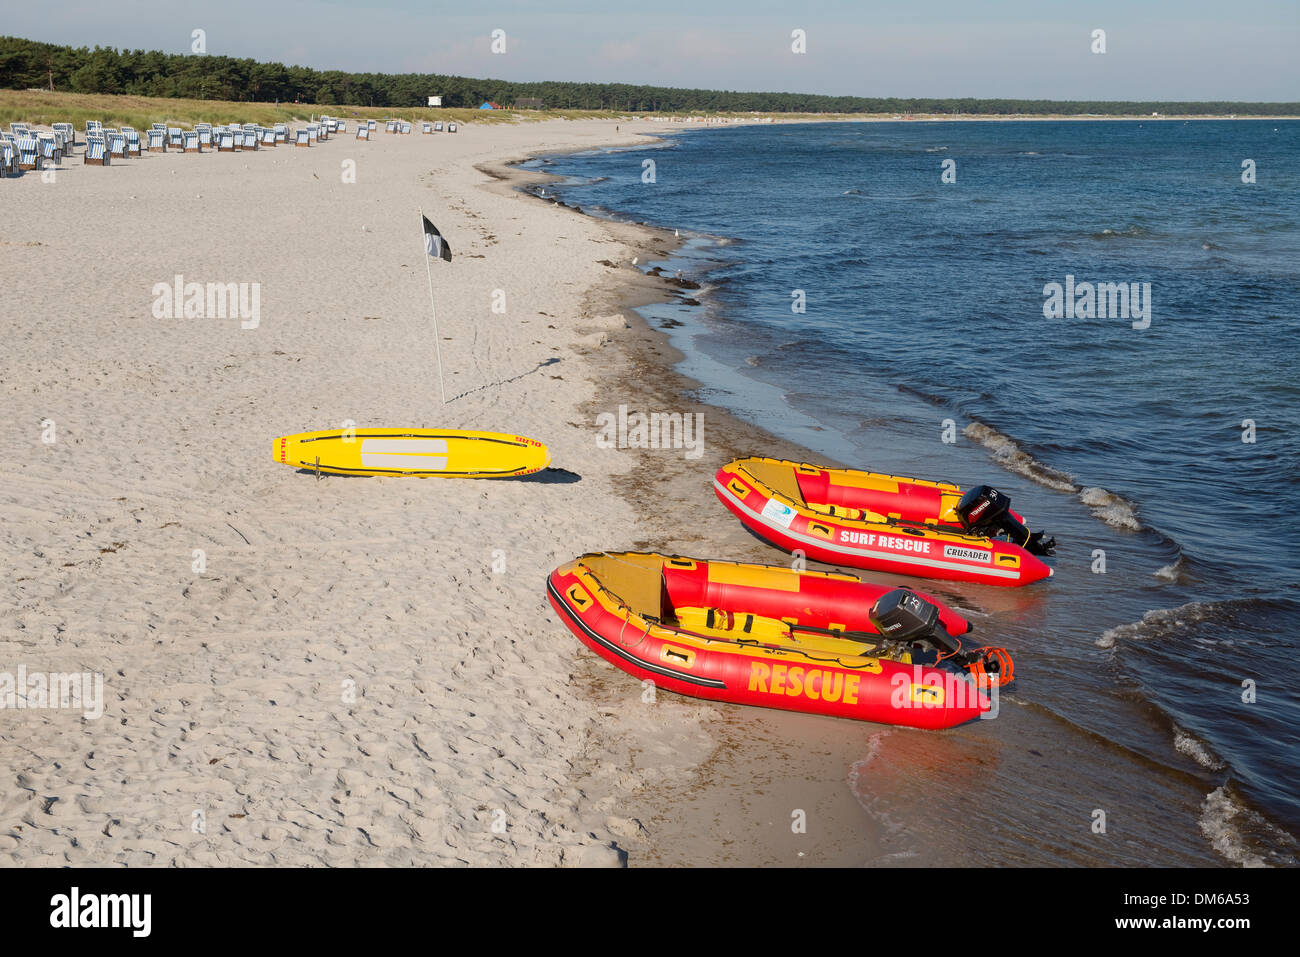 Baltic Sea, beach and lifeboats of the German Life Saving Society, Prerow, Mecklenburg-Vorpommern, Germany - Stock Image